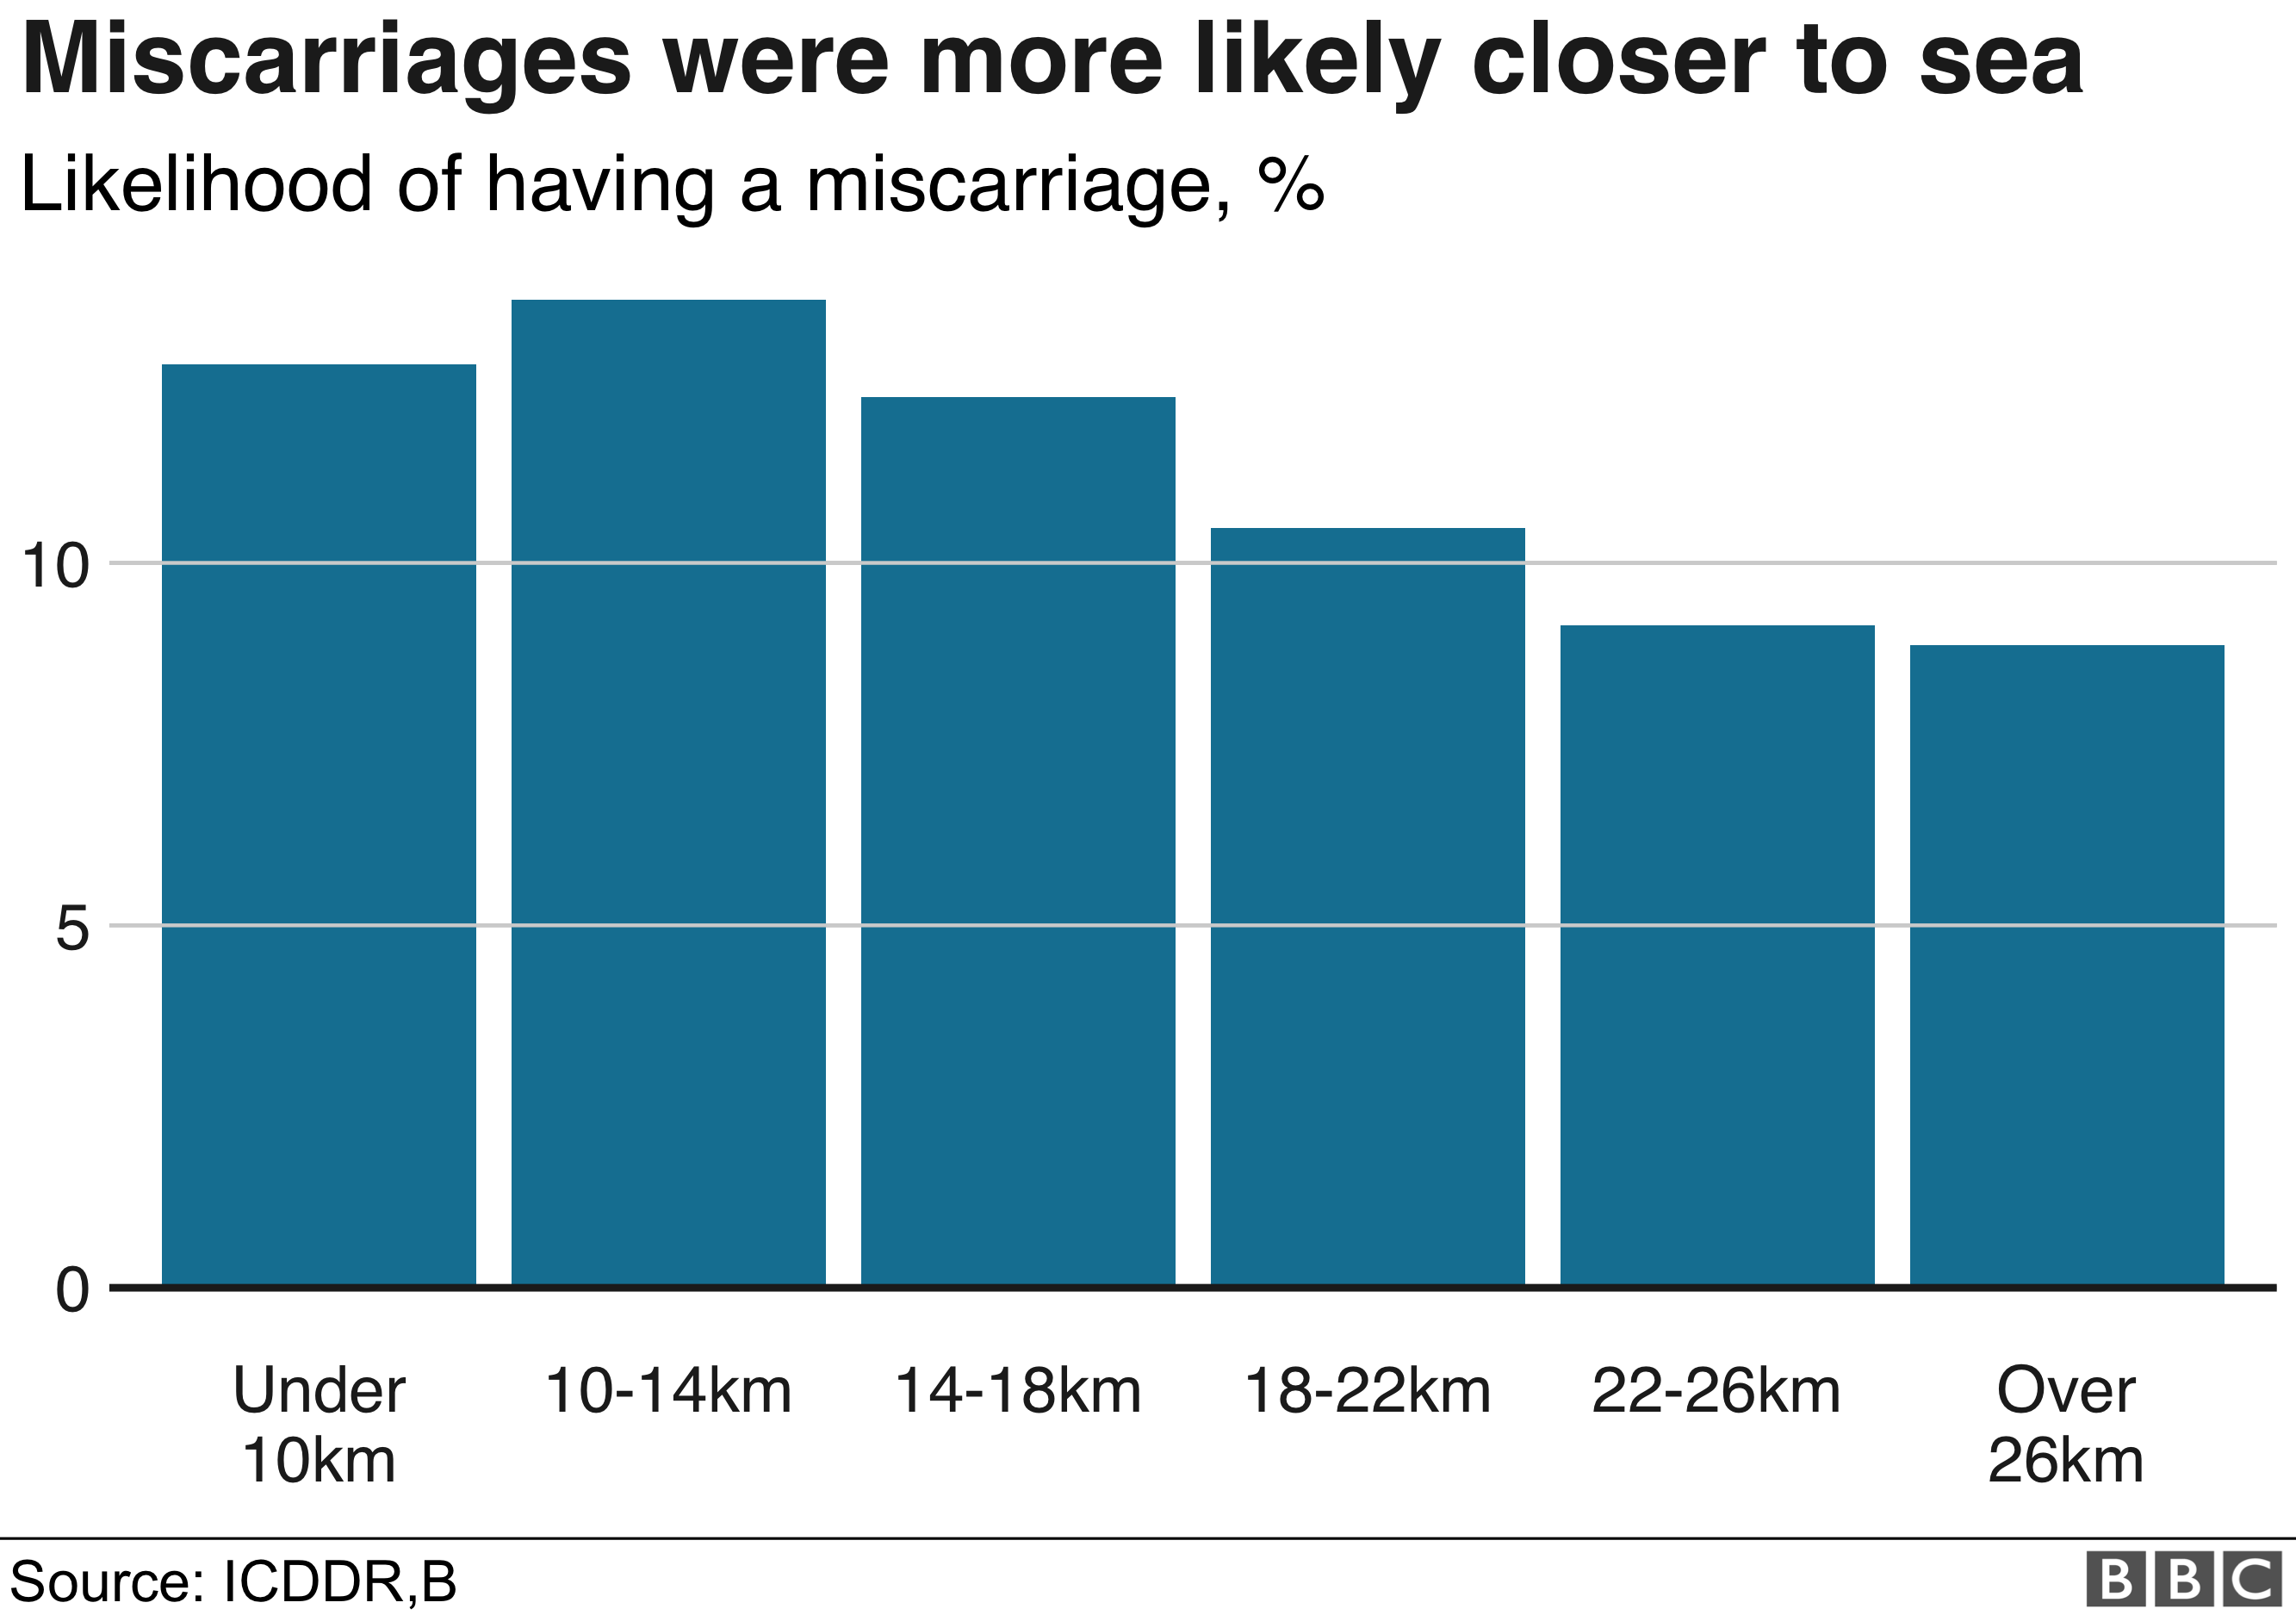 BBC Graphic of miscarriages that take place closer to seas